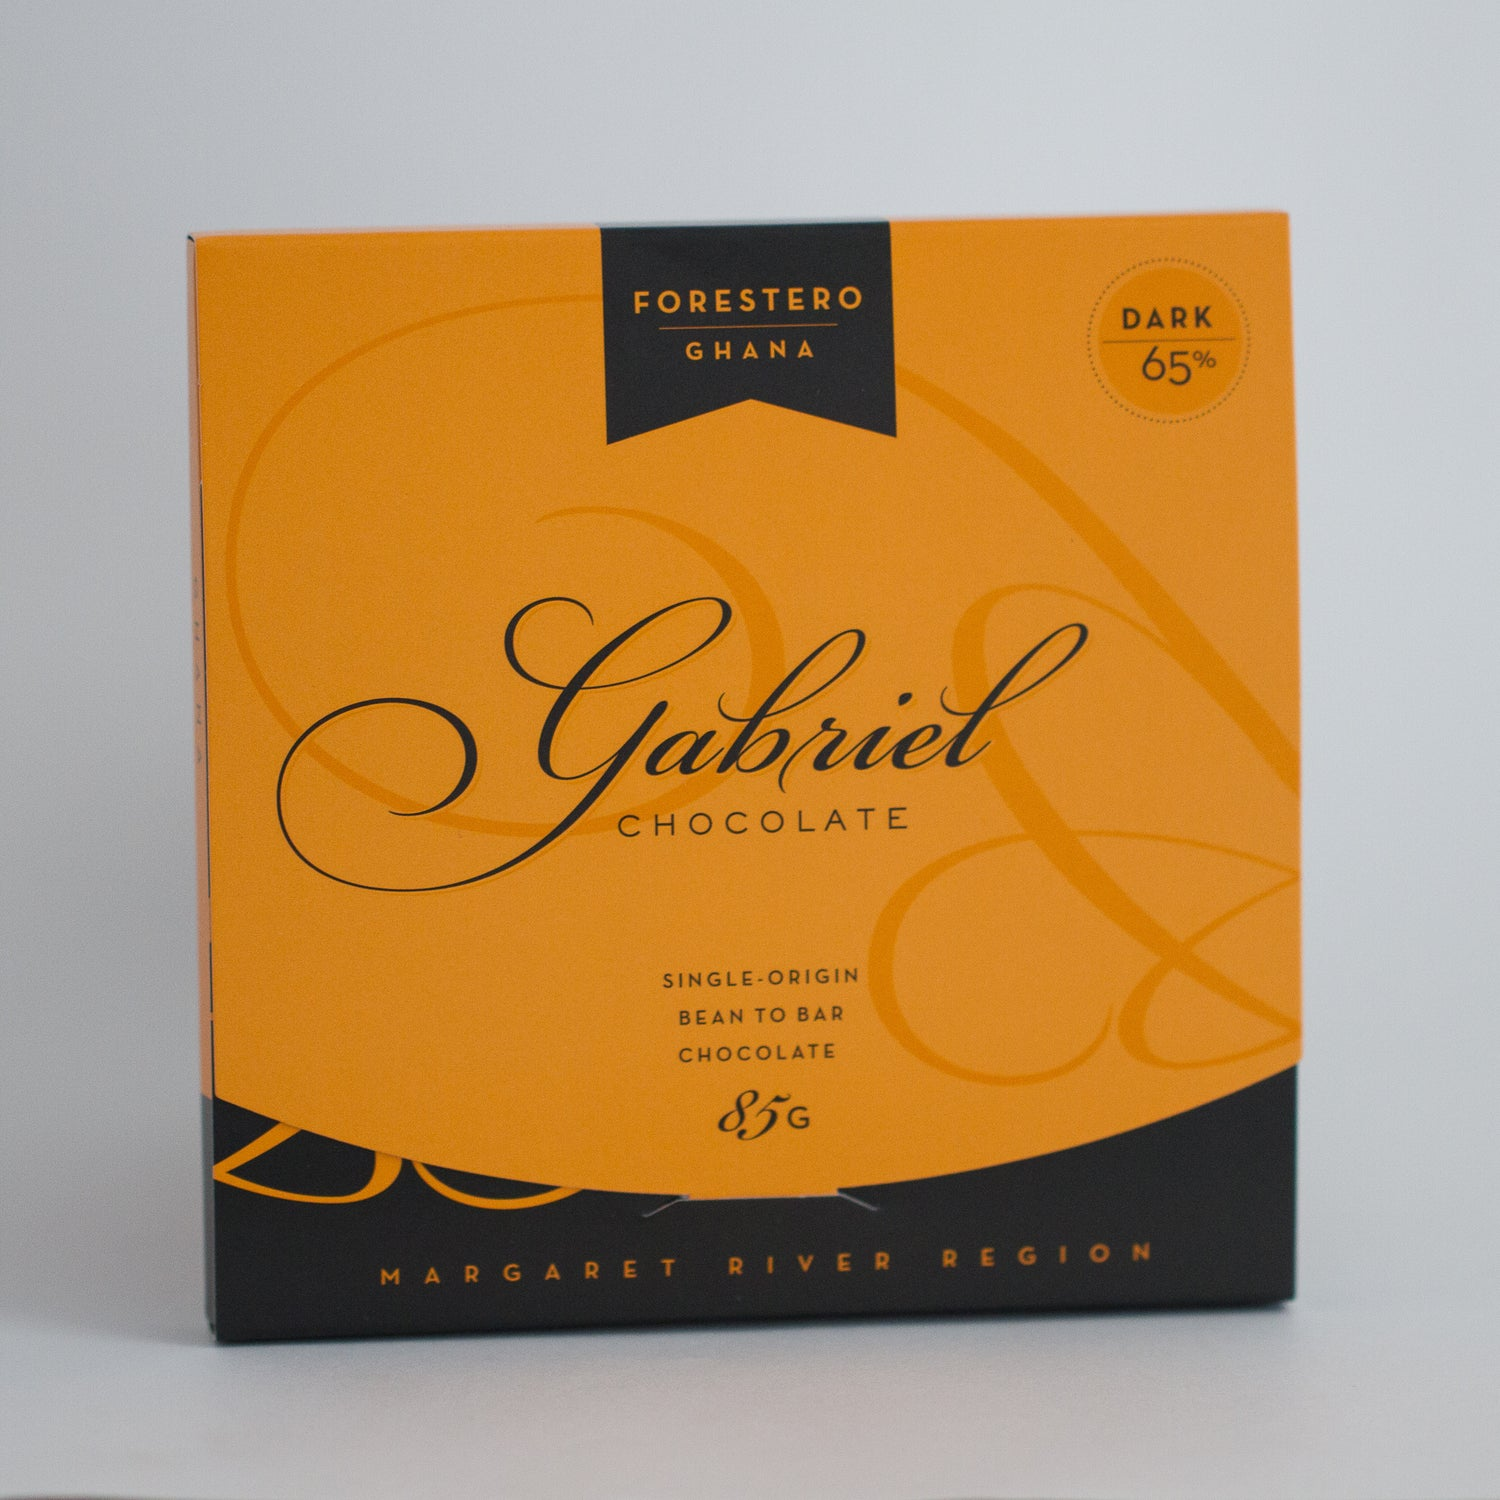 Ghana Forestero 65% Dark Chocolate